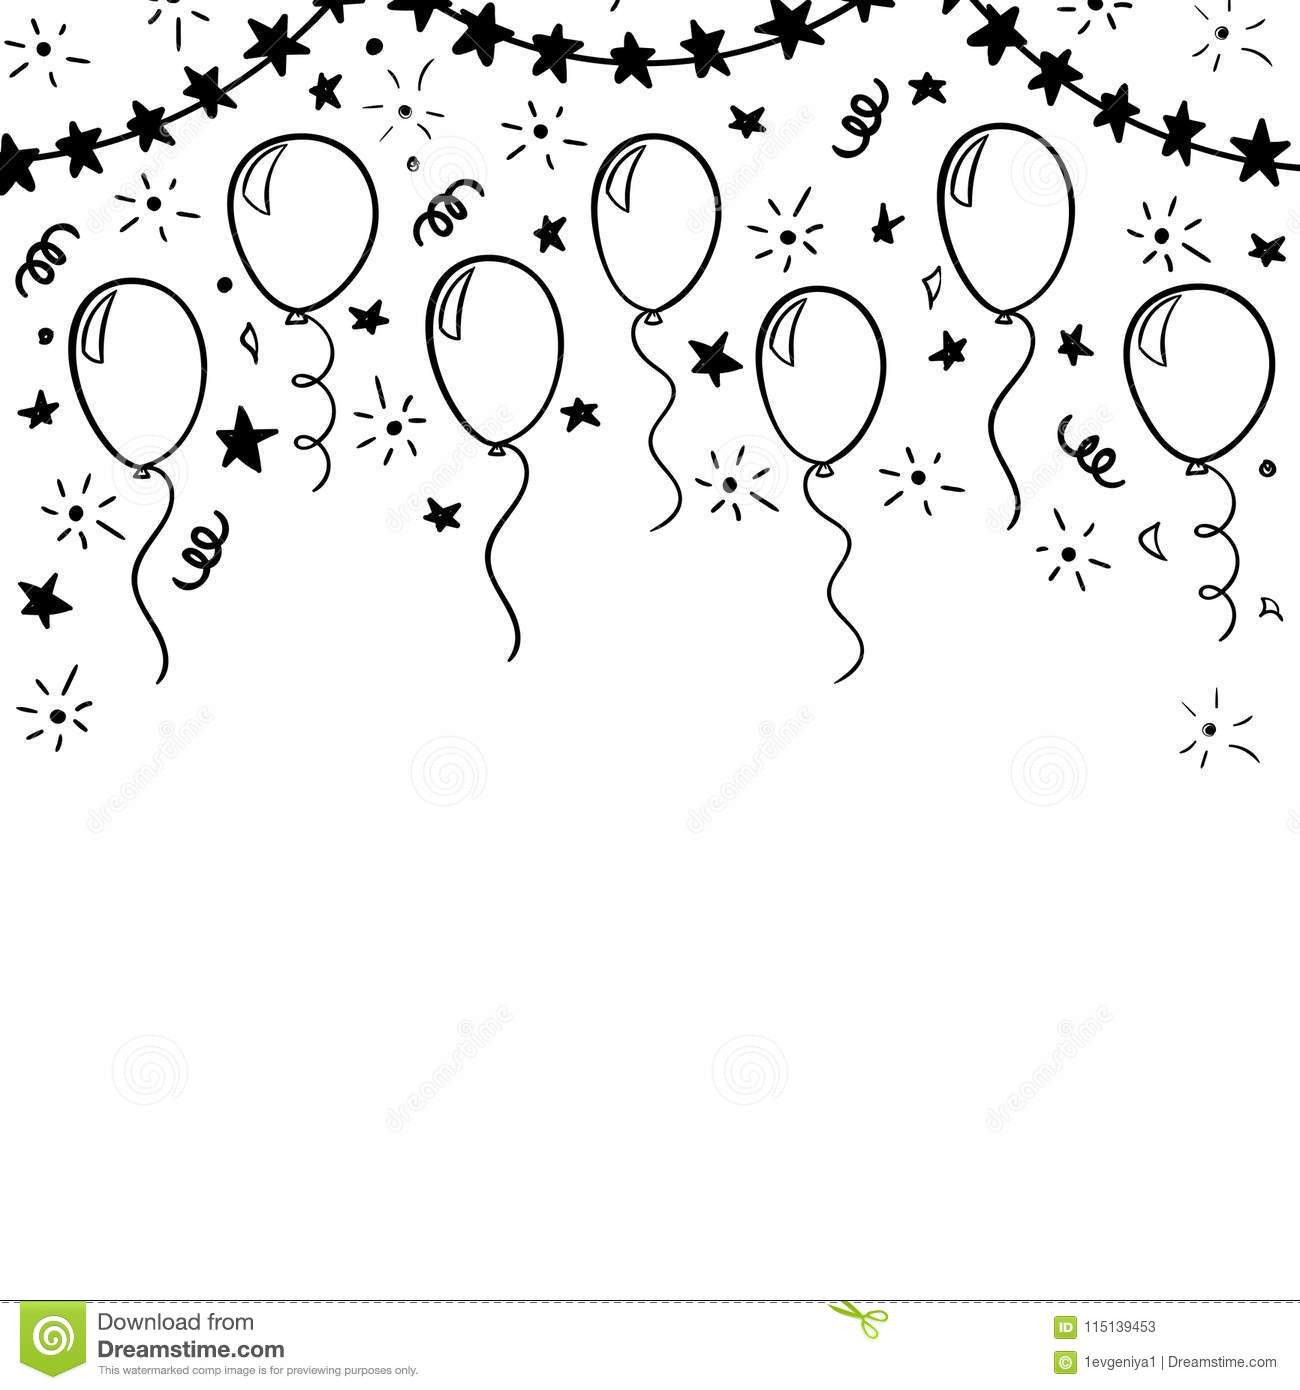 Hand Drawn Doodle Black And White Balloon Design Holiday Greeting Card And Invitation Of